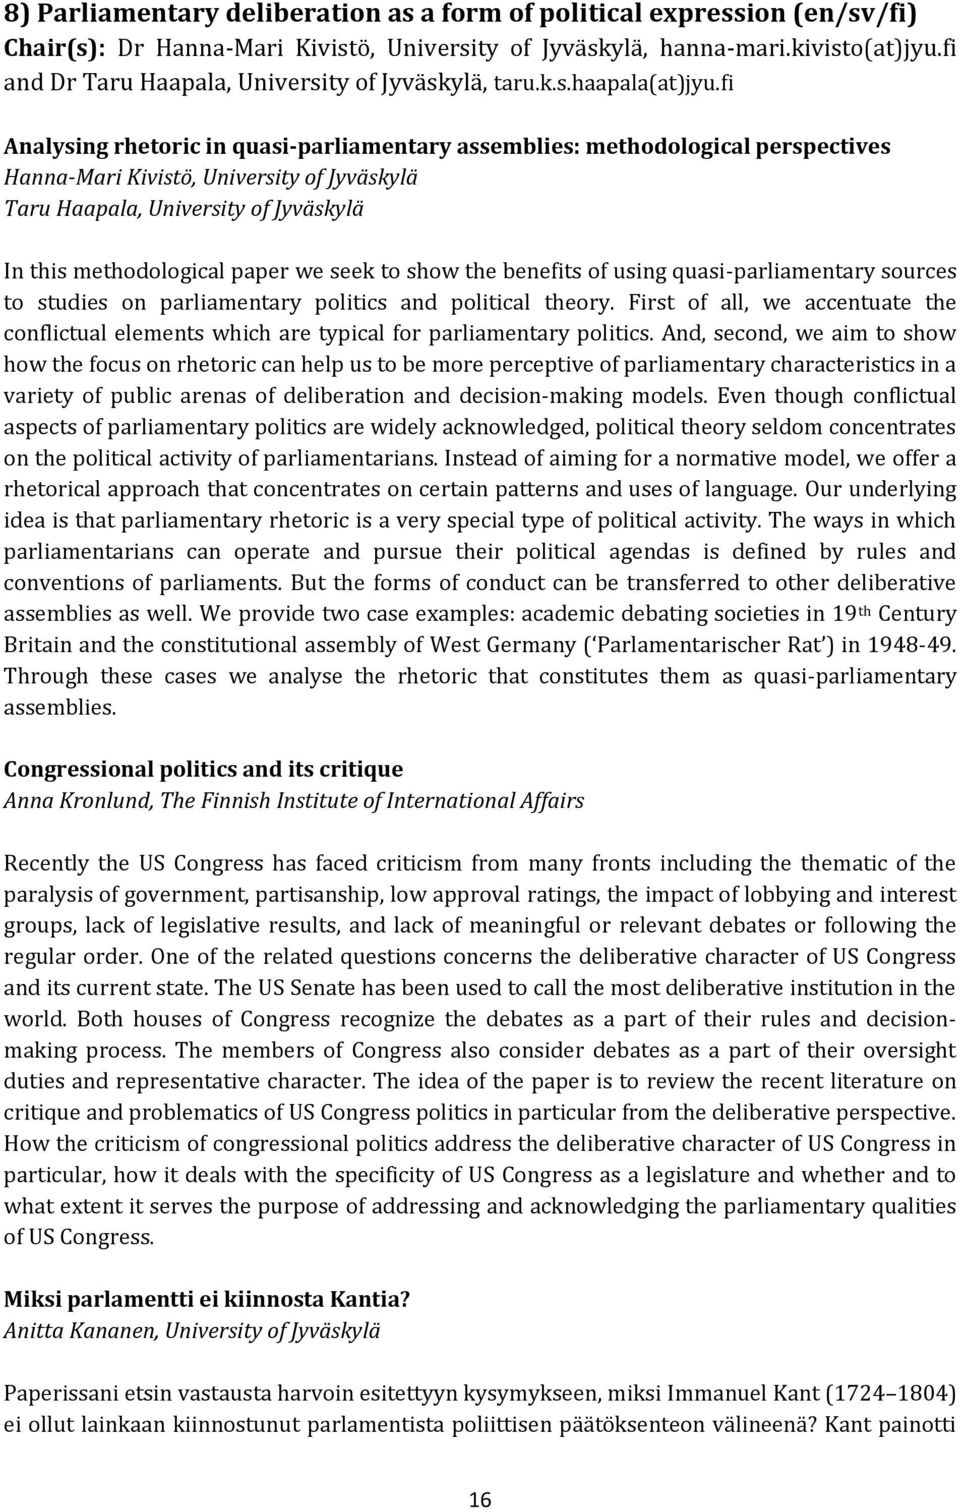 fi Analysing rhetoric in quasi-parliamentary assemblies: methodological perspectives Hanna-Mari Kivistö, University of Jyväskylä Taru Haapala, University of Jyväskylä In this methodological paper we